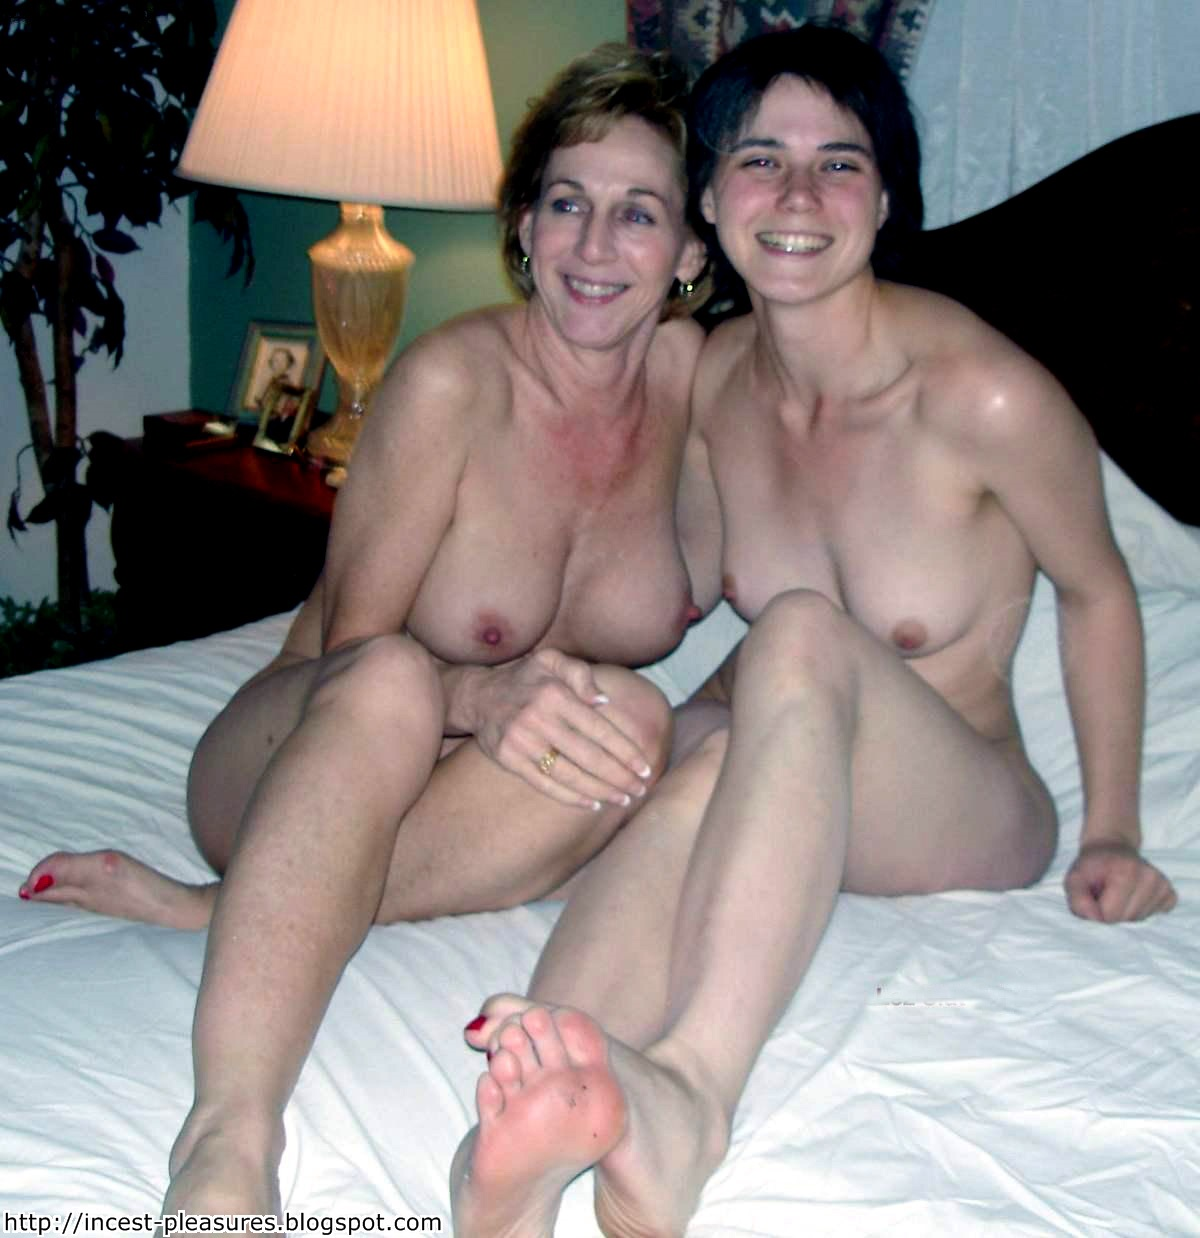 Mom and daughter sex nude together